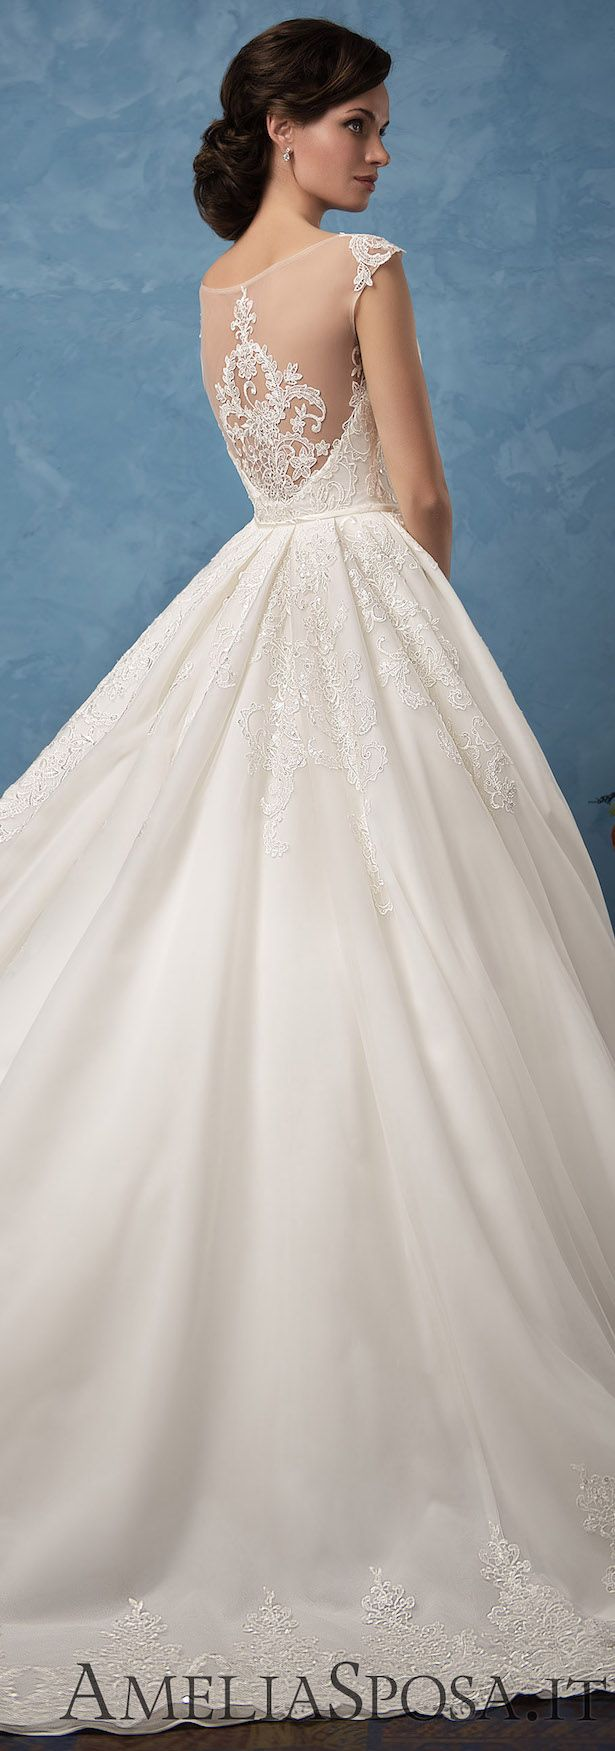 Amelia Sposa 2017 Wedding Dresses - Royal Blue Collection ...